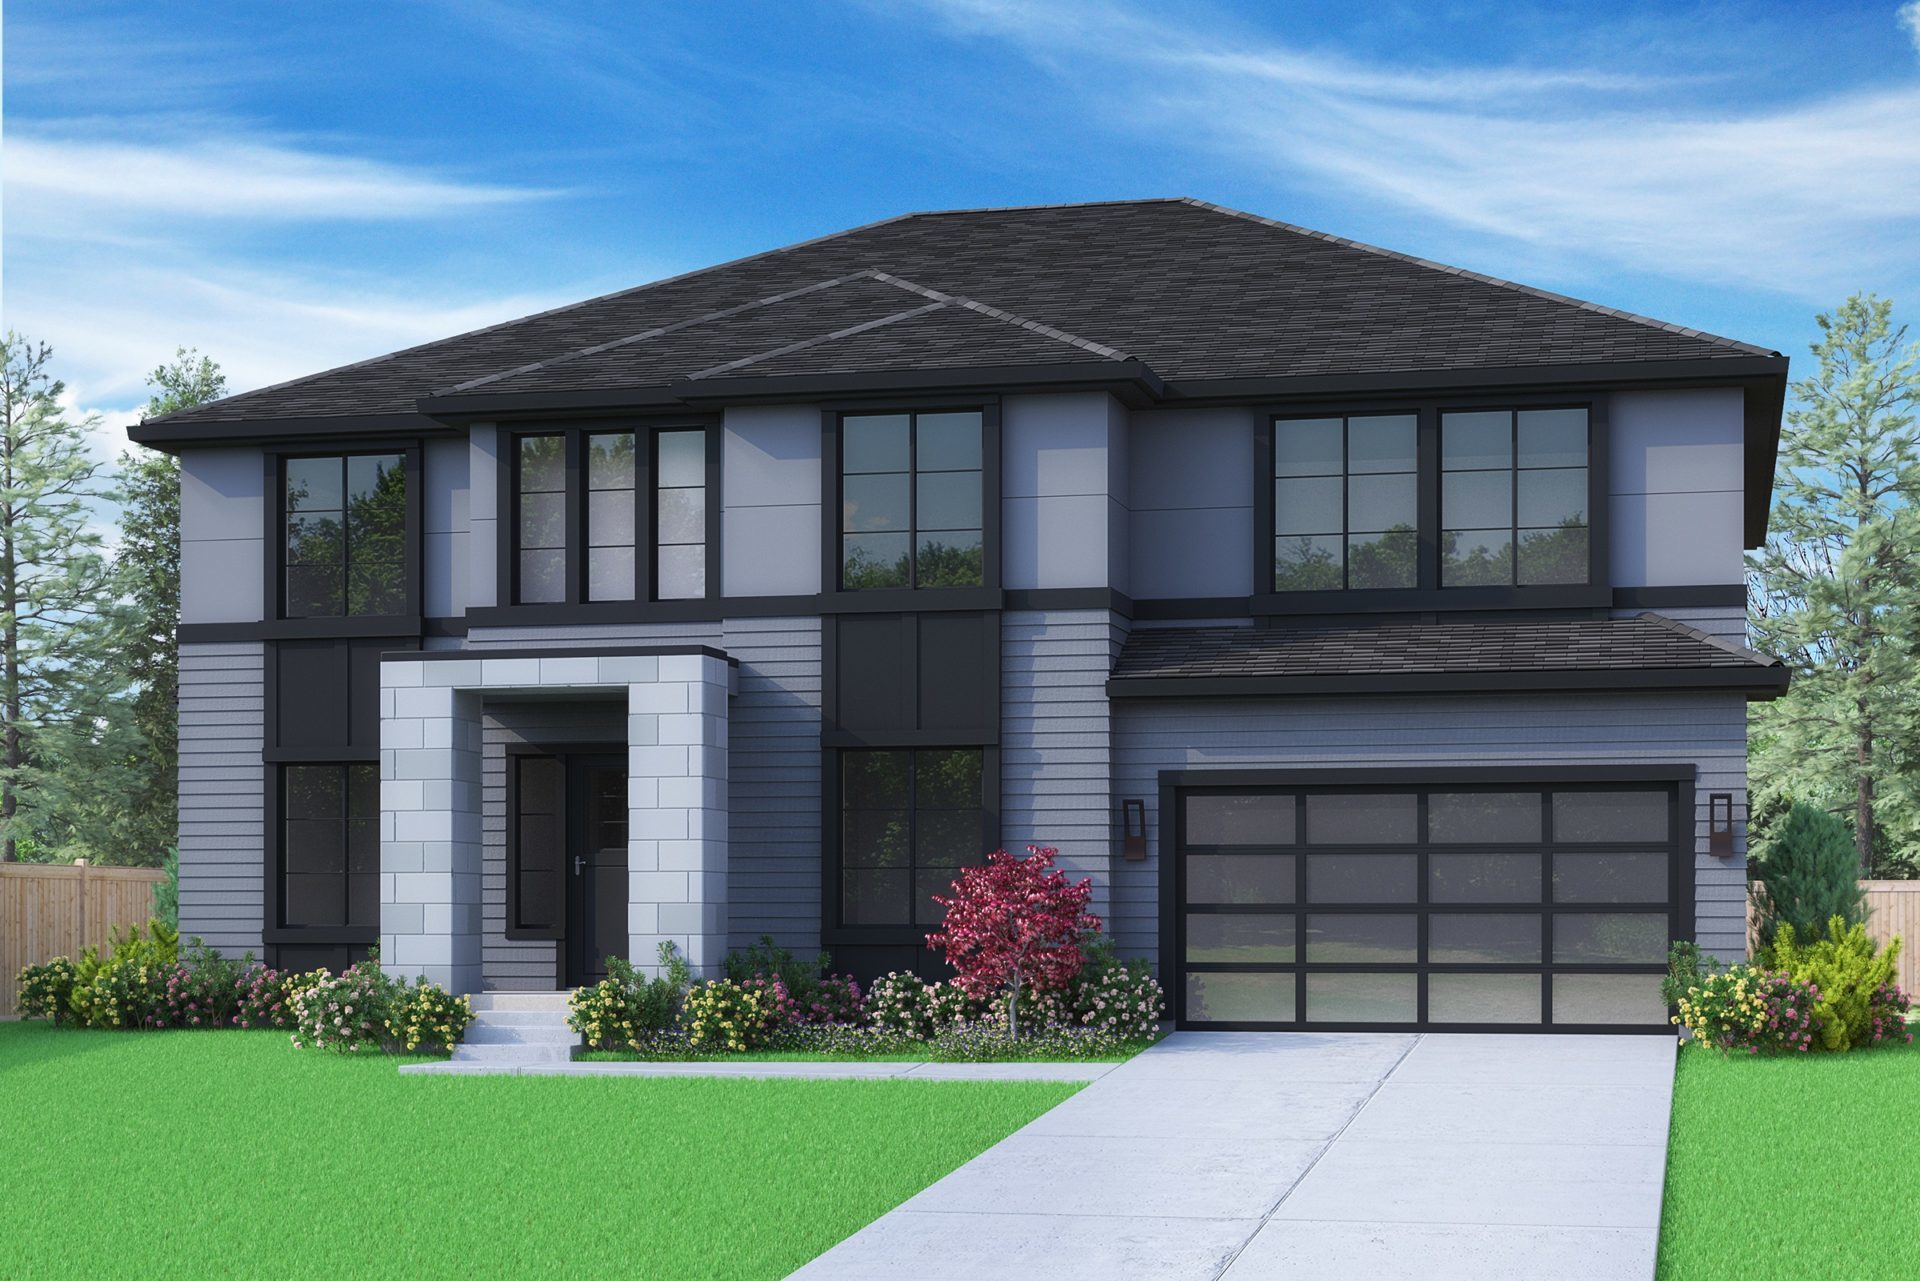 View our new luxury home construction on 4165 146th Ave SE, in Bellevue, WA from MN Custom Homes